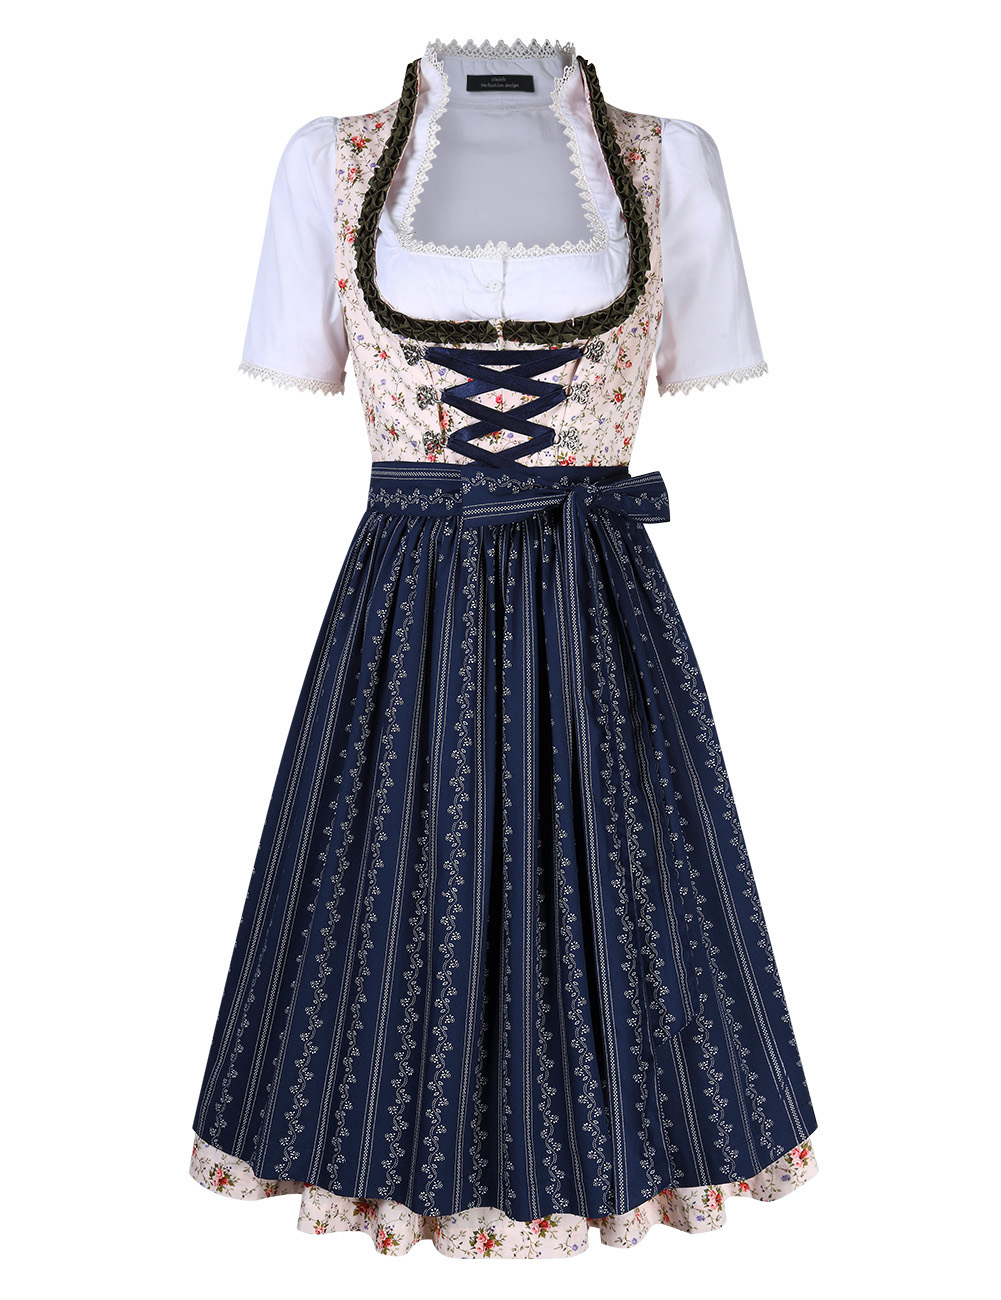 [EU Direct] Women's Floral Lace Up with Buckle Layered Casual Dresses Suit for Oktoberfest